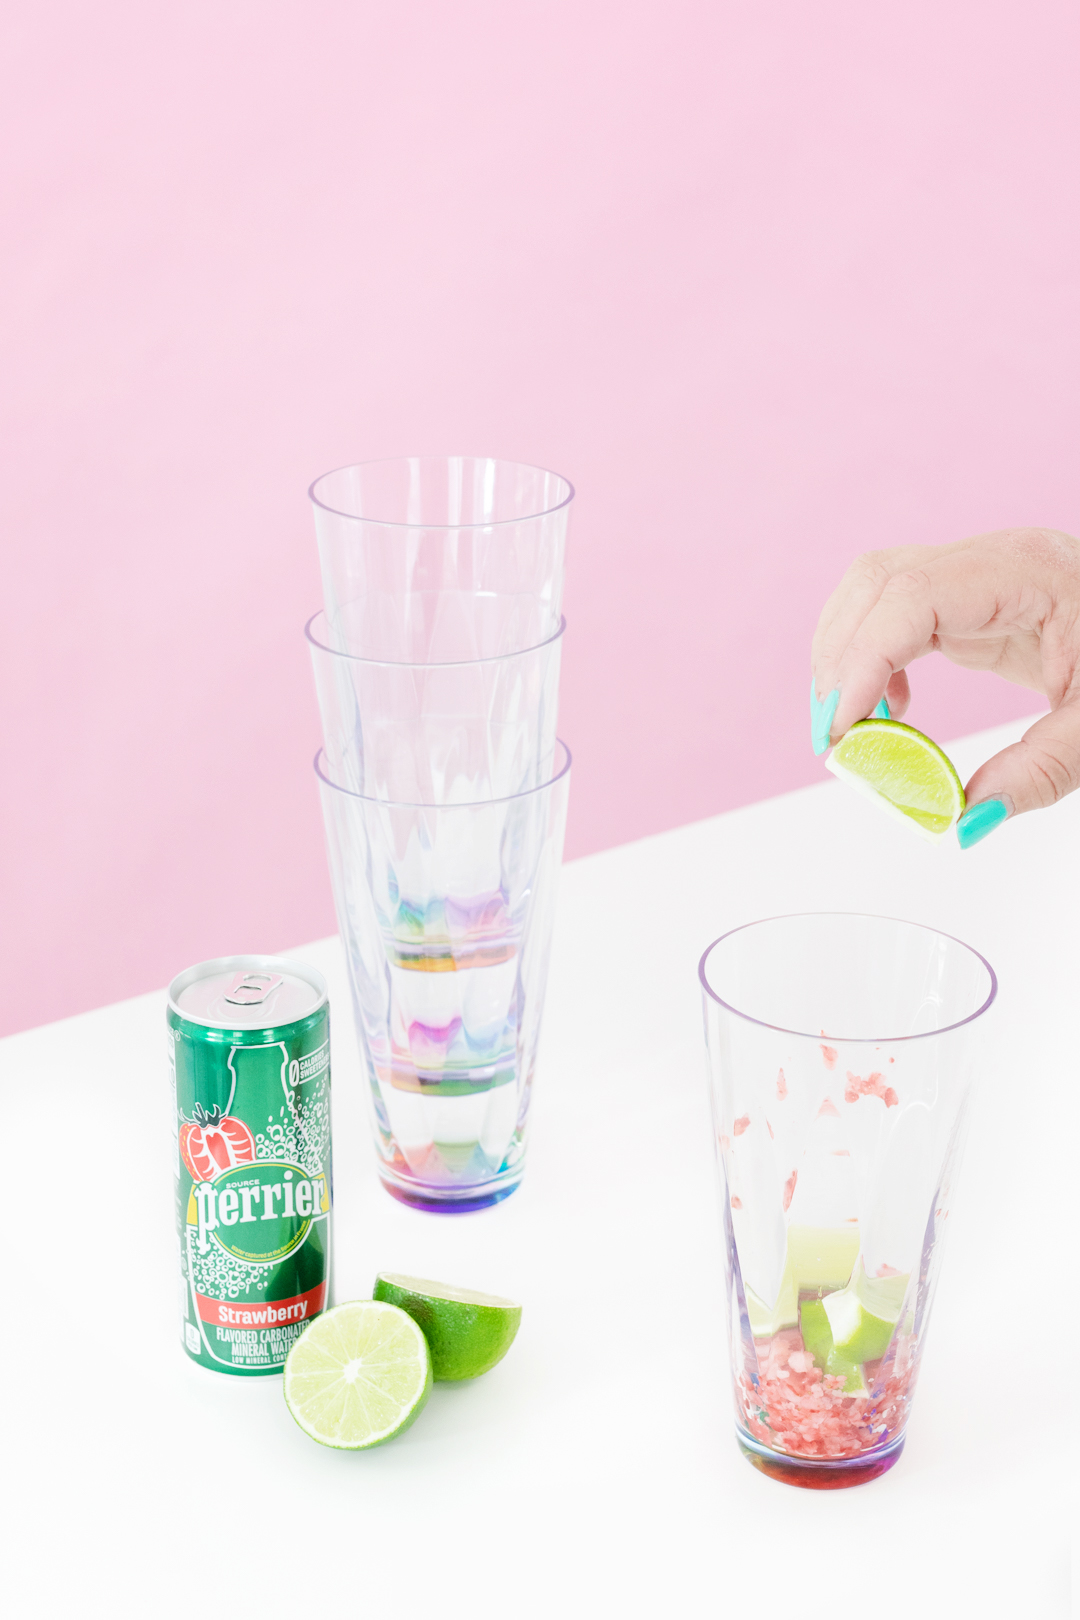 squeezing lime into cup